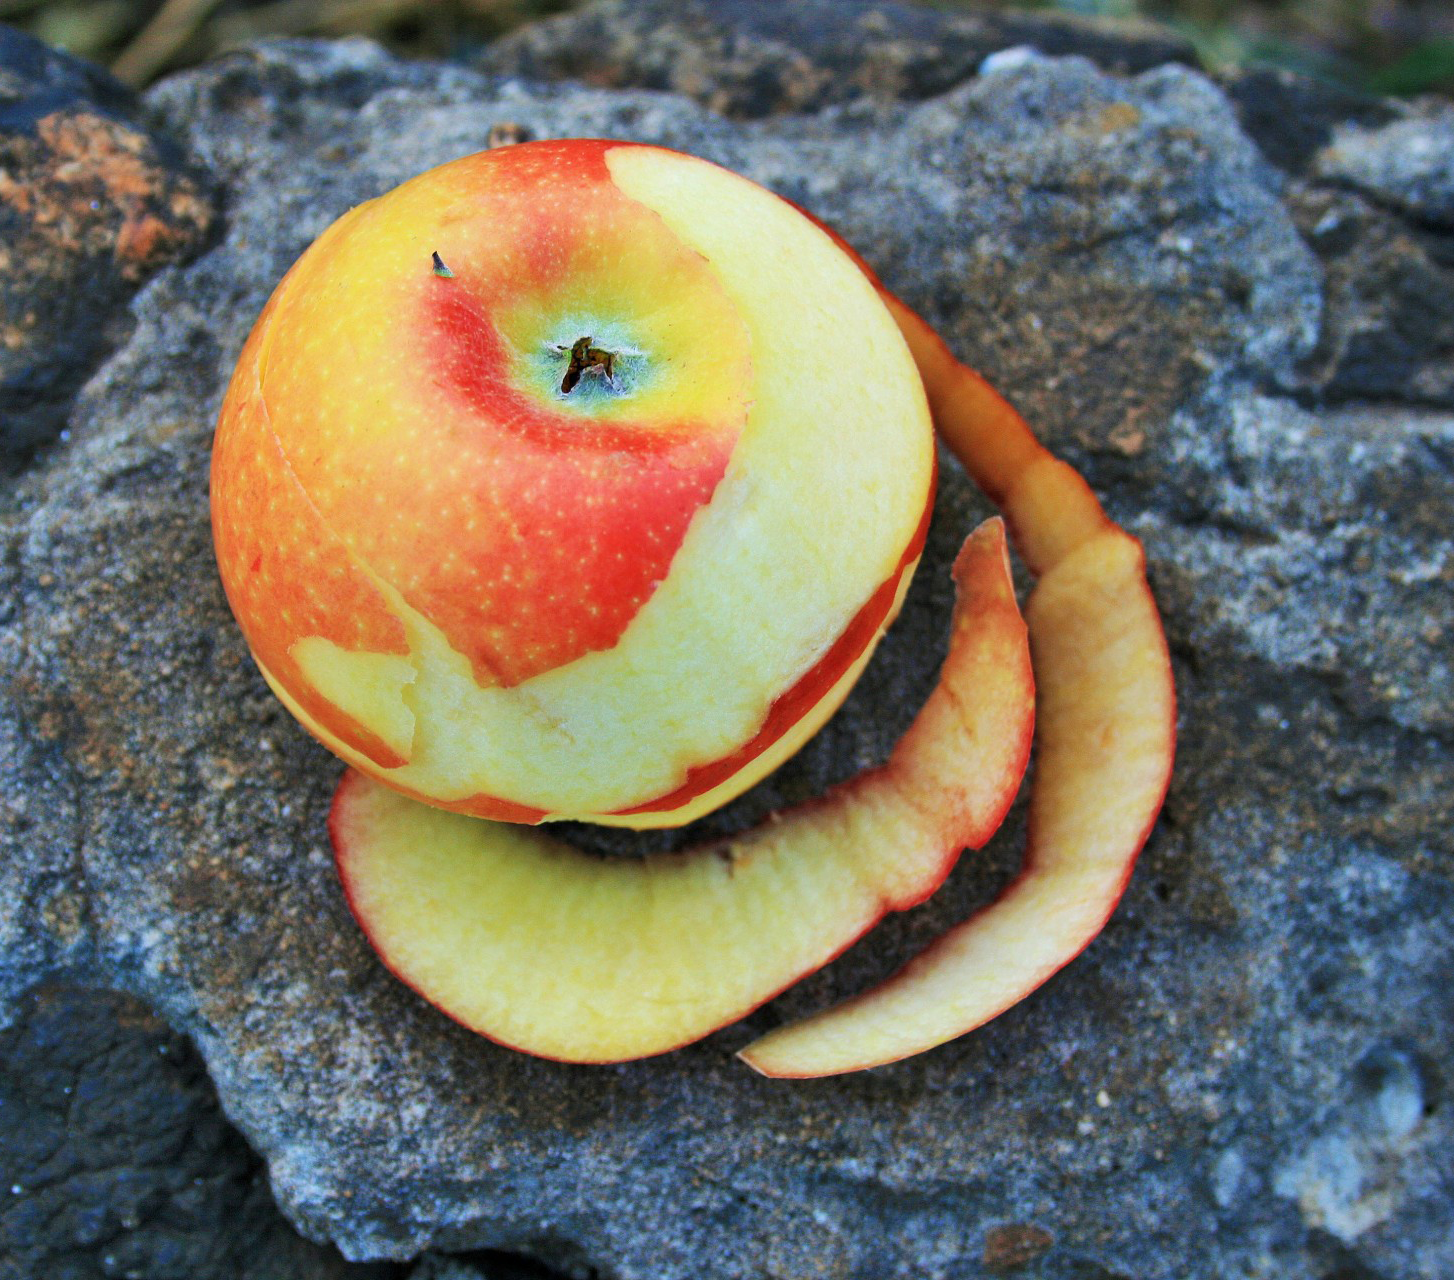 A apple partially pared